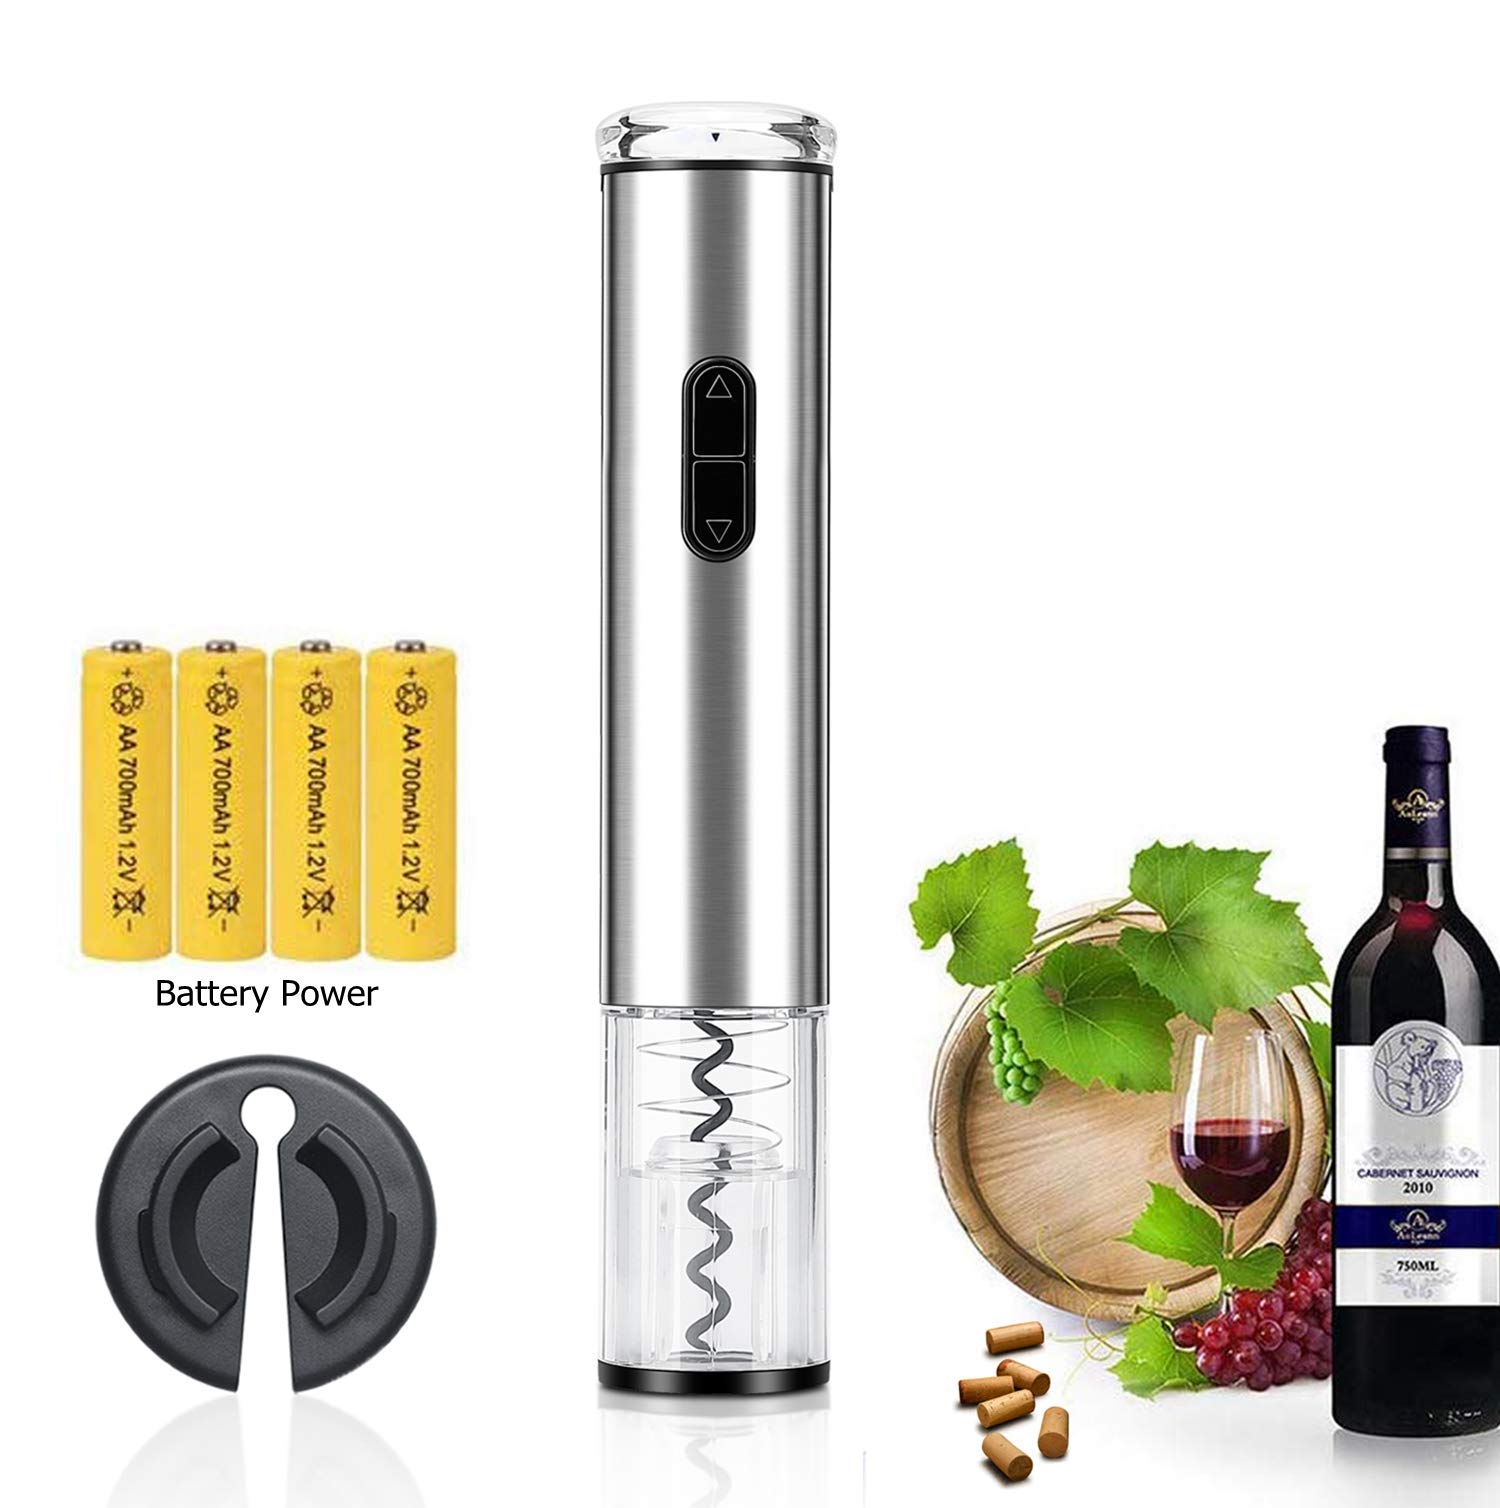 Electric Wine Opener, Automatic Wine Opener Corkscrew Battery Operated Bottle Openers with Foil Cutter Stainless Steel by Gorgeous Tec